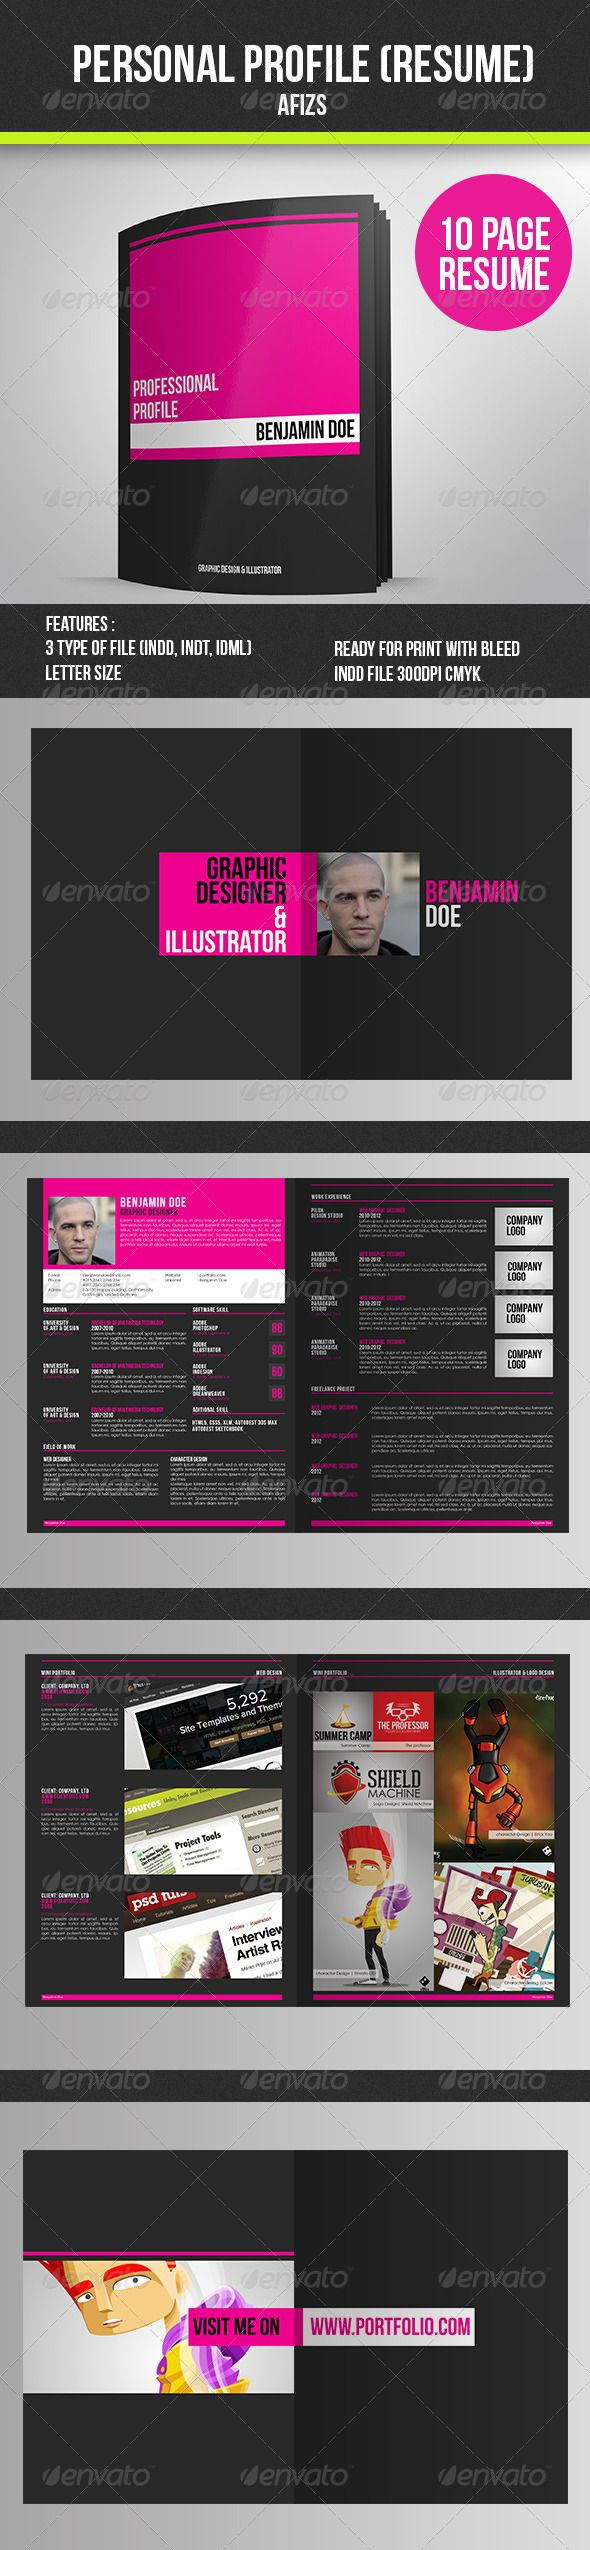 Personal Profile (Resume) GraphicRiver Stay Update and